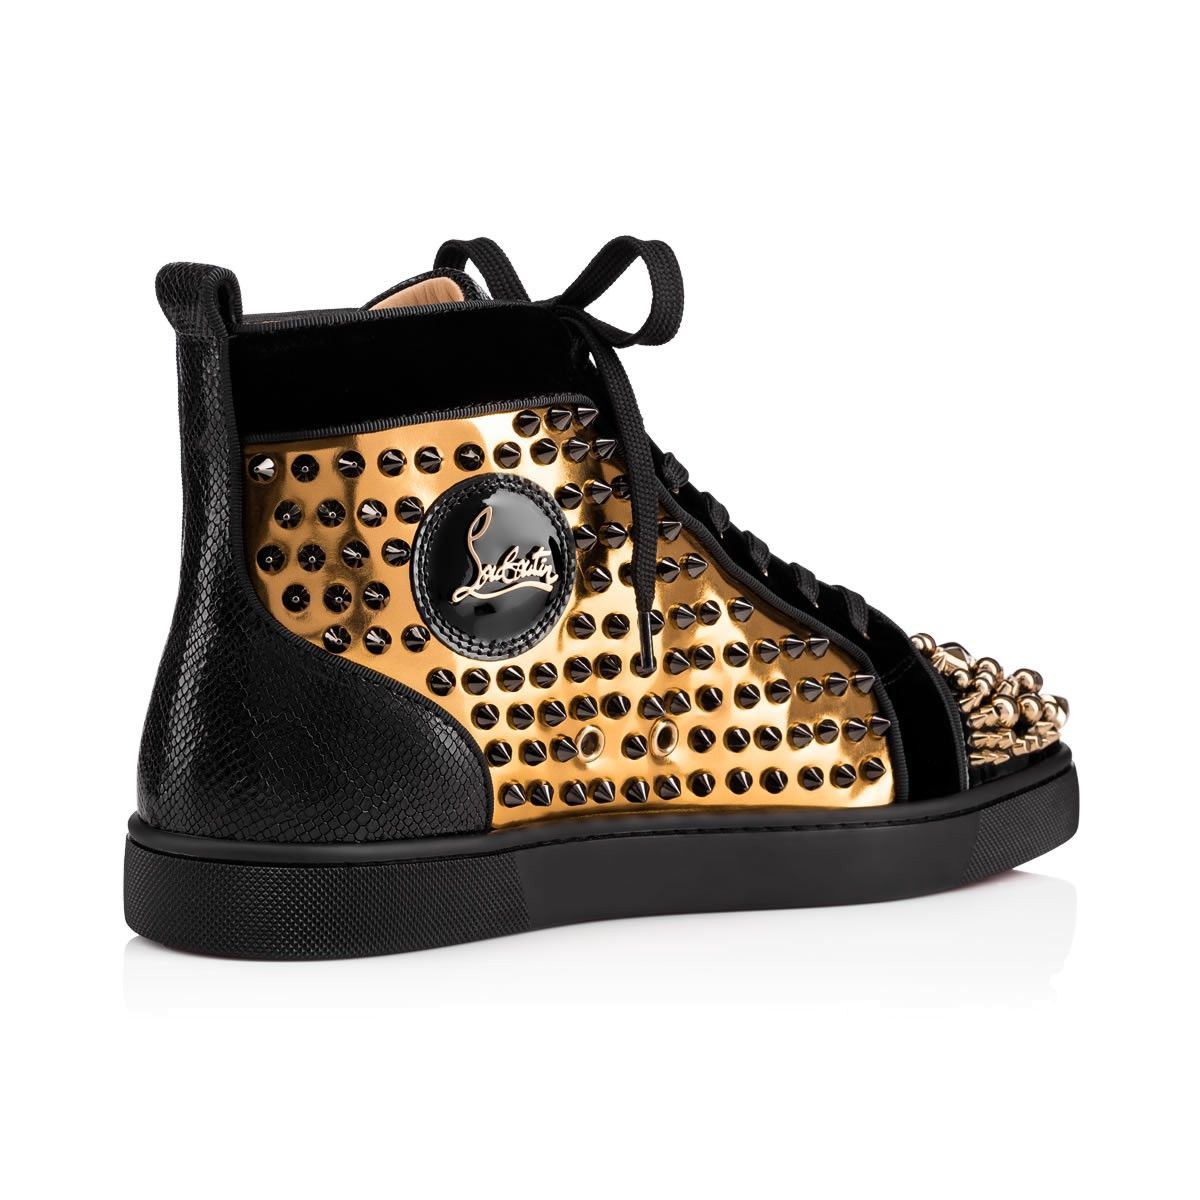 Shoes Mad Sneak Flat Christian Louboutin   Shoes mens